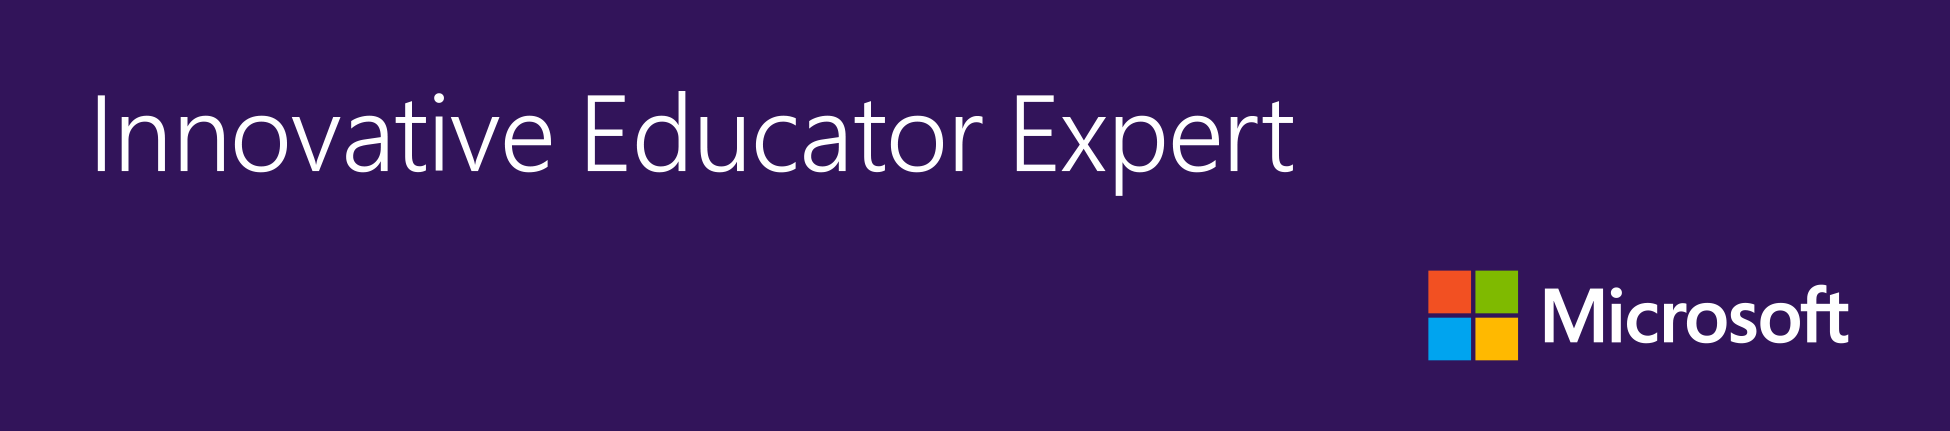 Microsoft Innovative Expert Educator